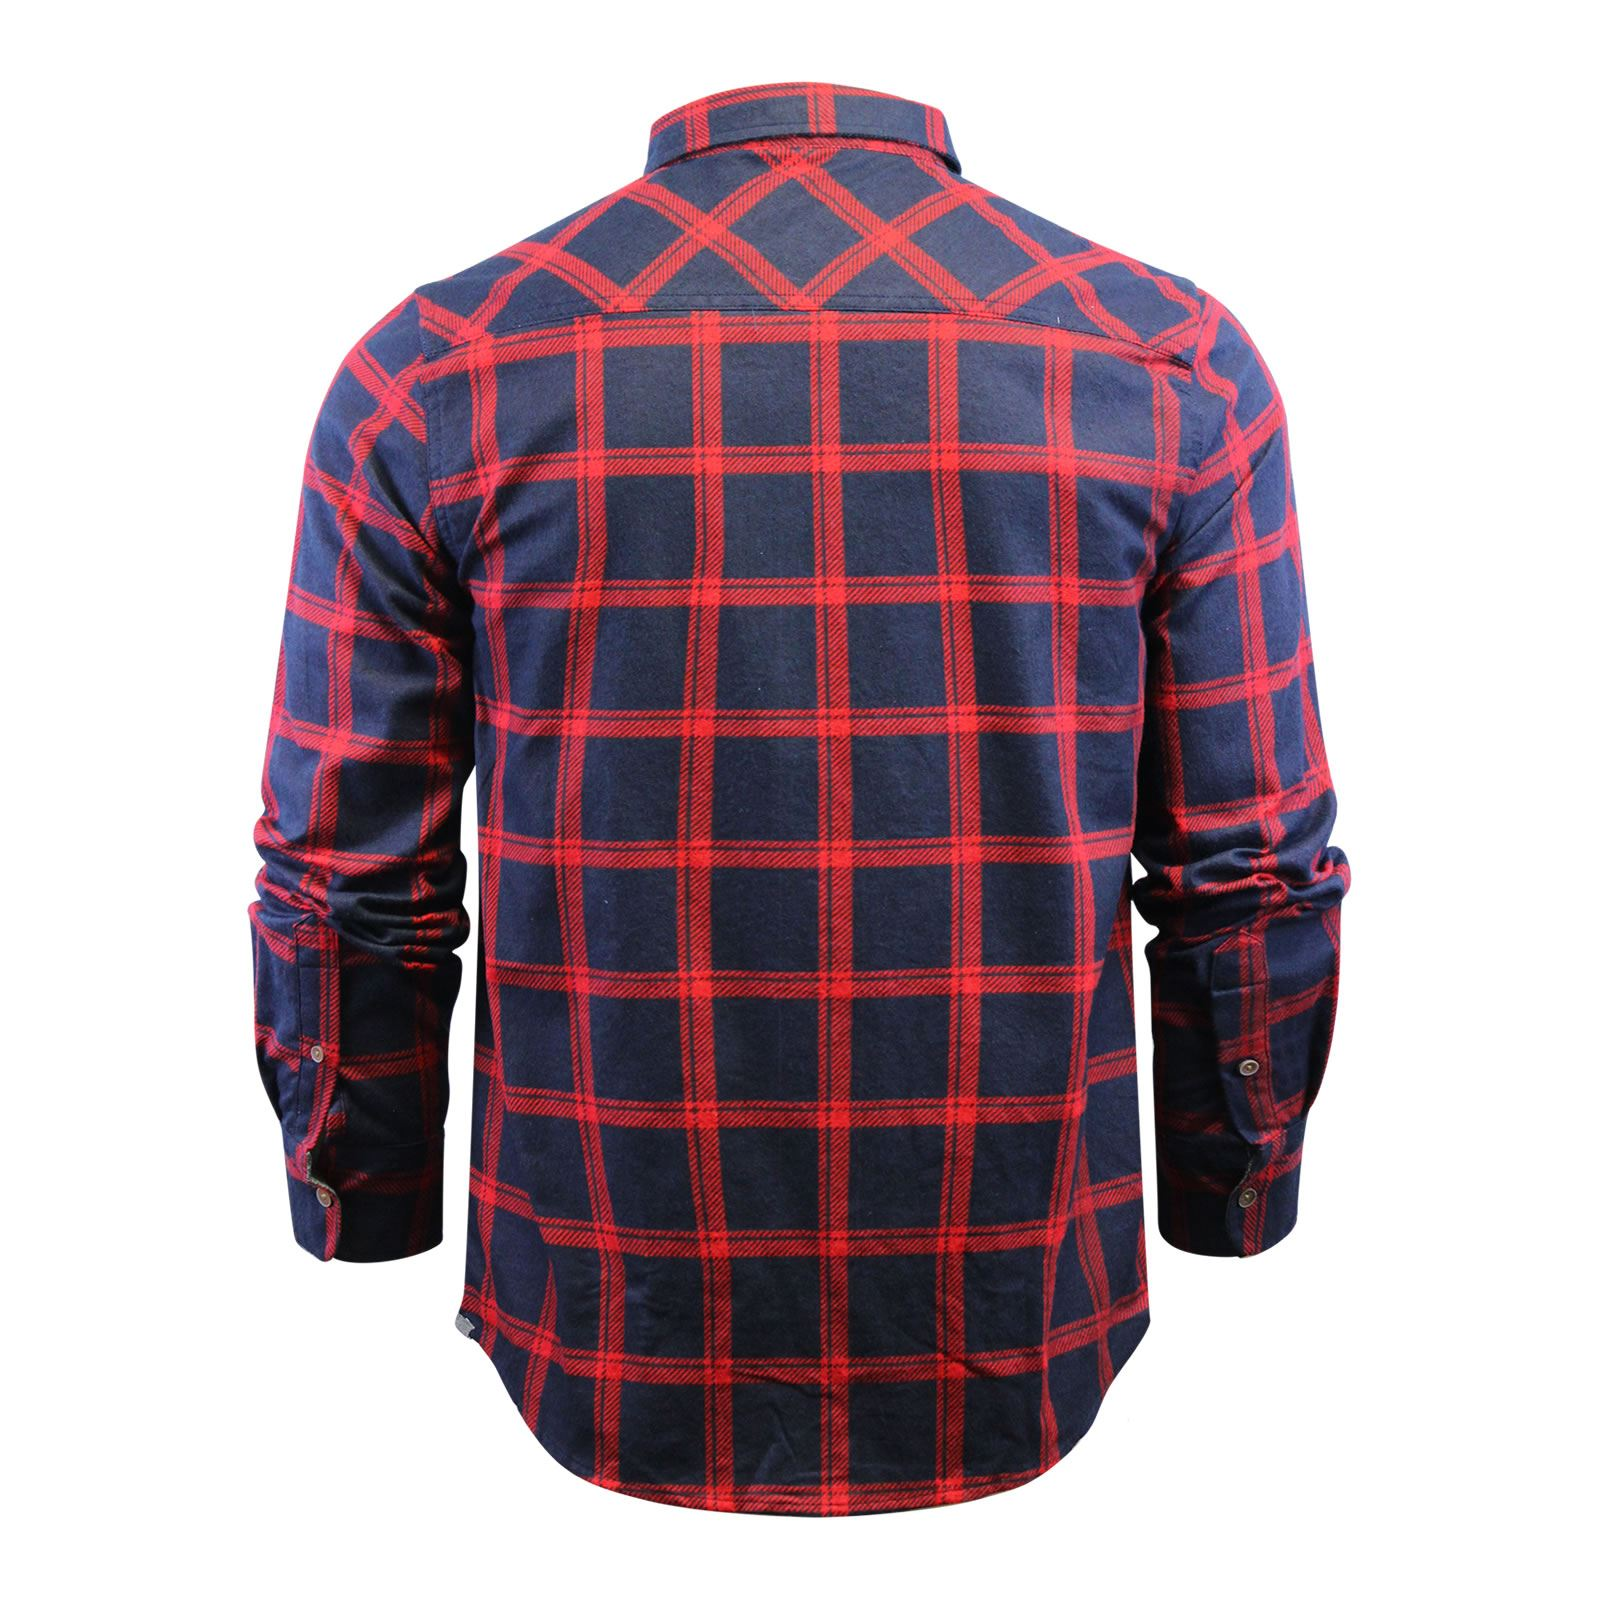 Mens-Check-Shirt-Brave-Soul-Flannel-Brushed-Cotton-Long-Sleeve-Casual-Top thumbnail 103